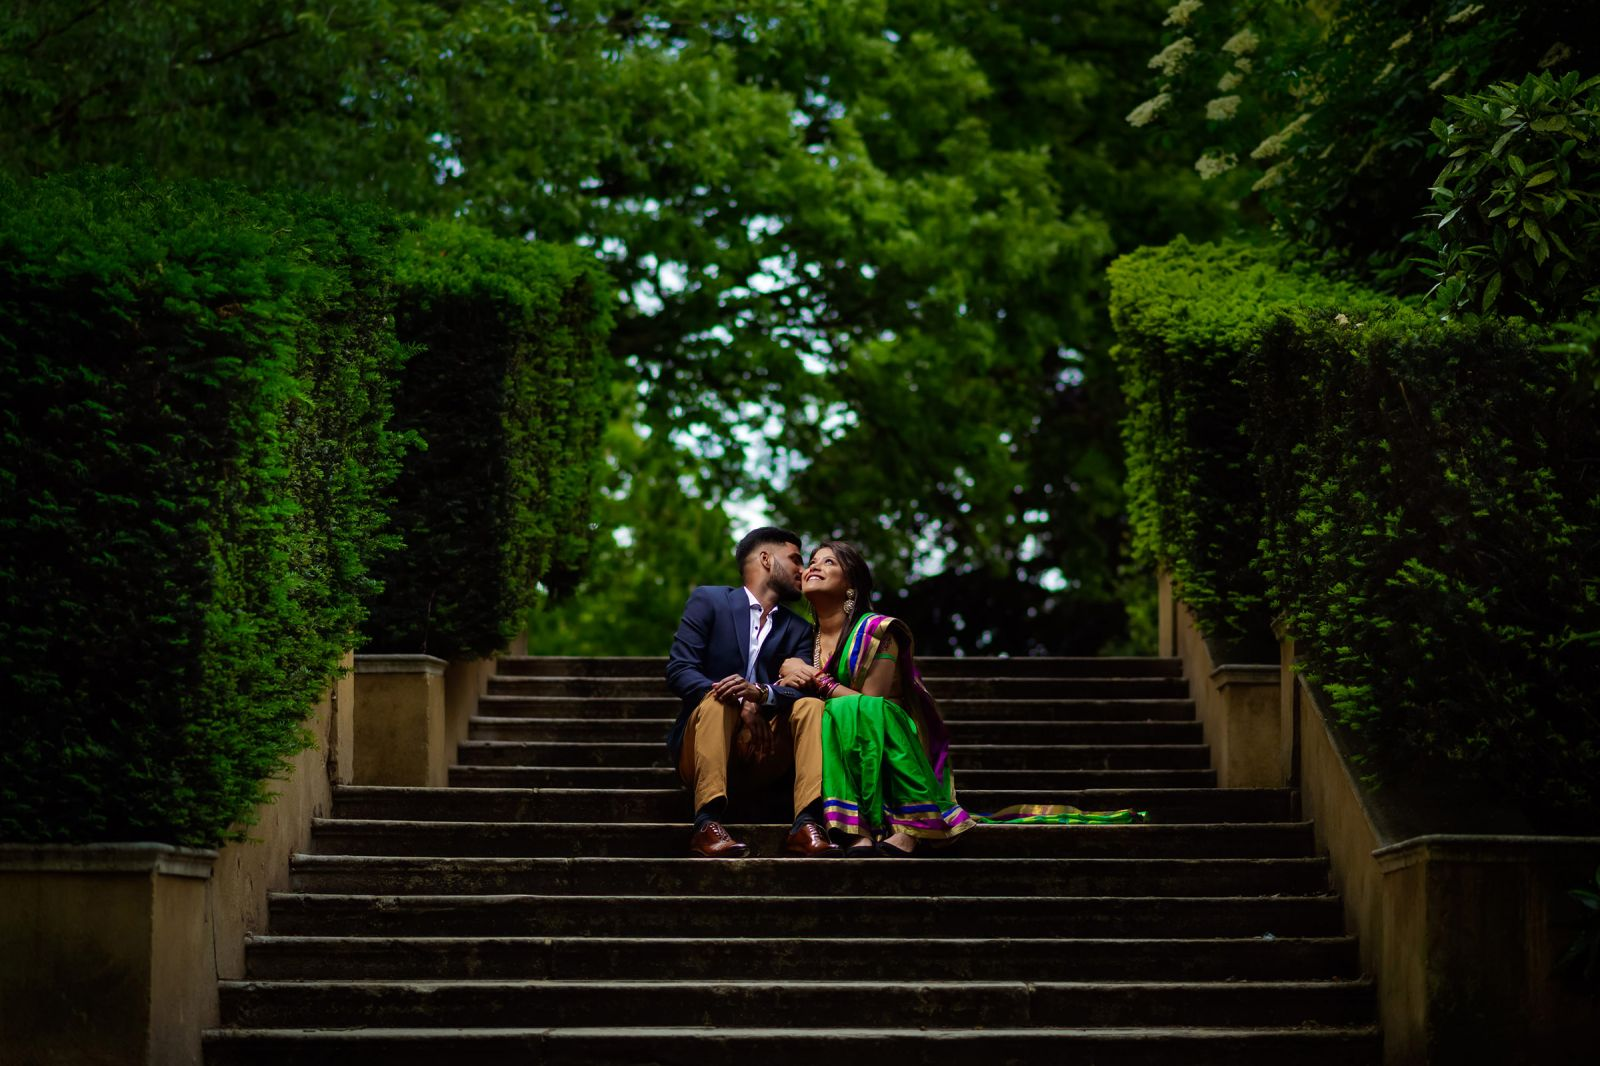 south indian pre wedding photography holland park london